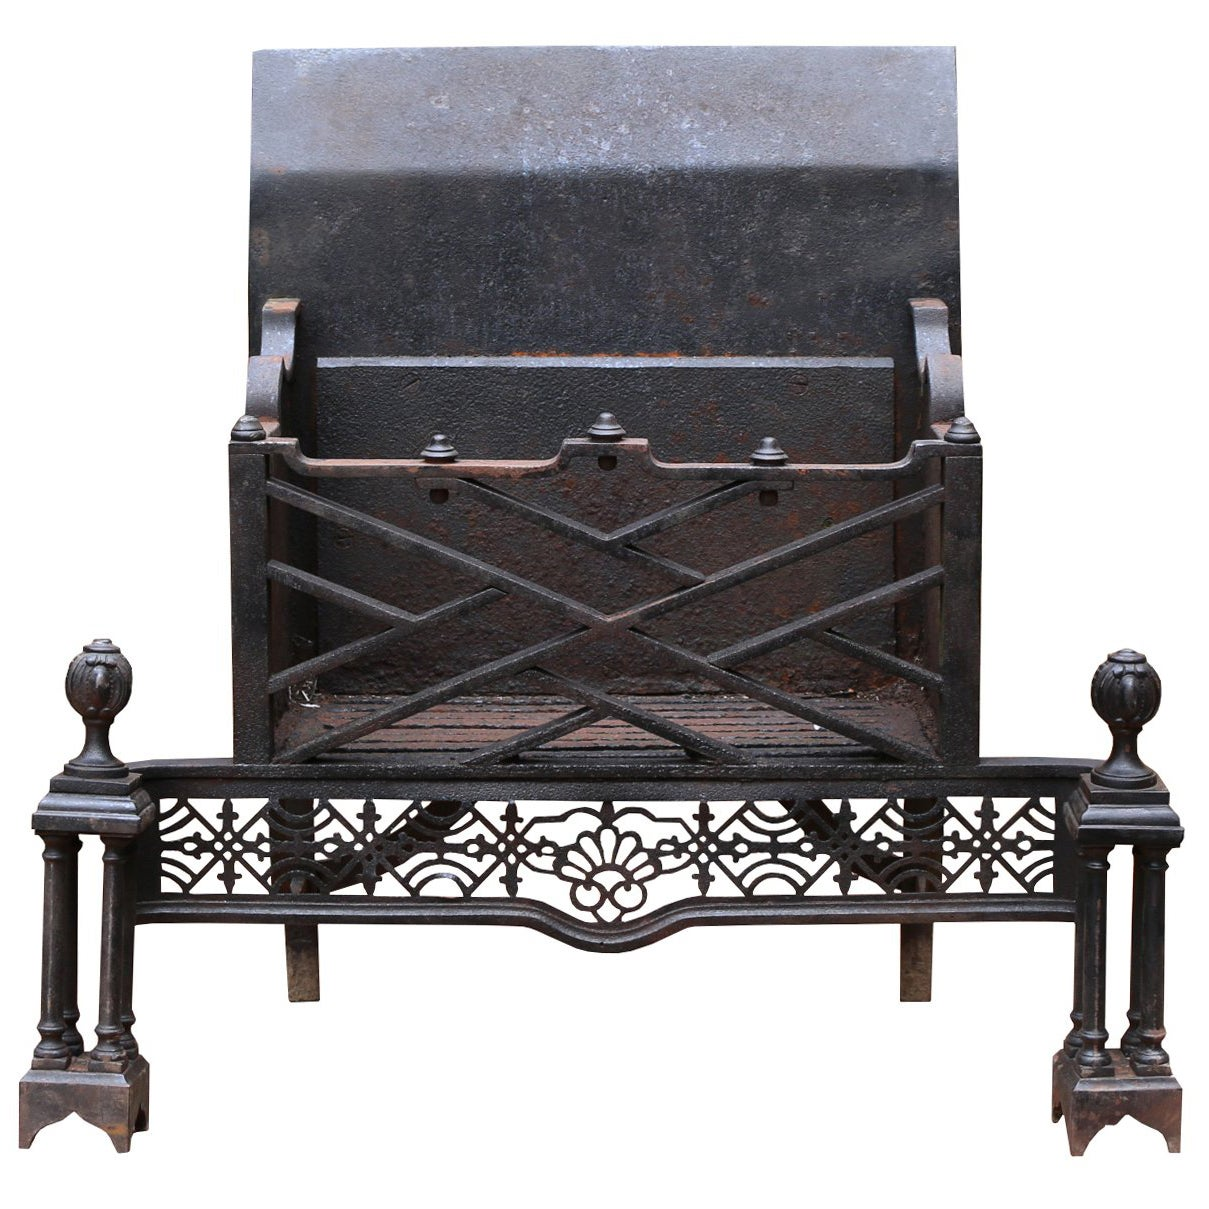 Early 19th Century English Steel Fire Grate